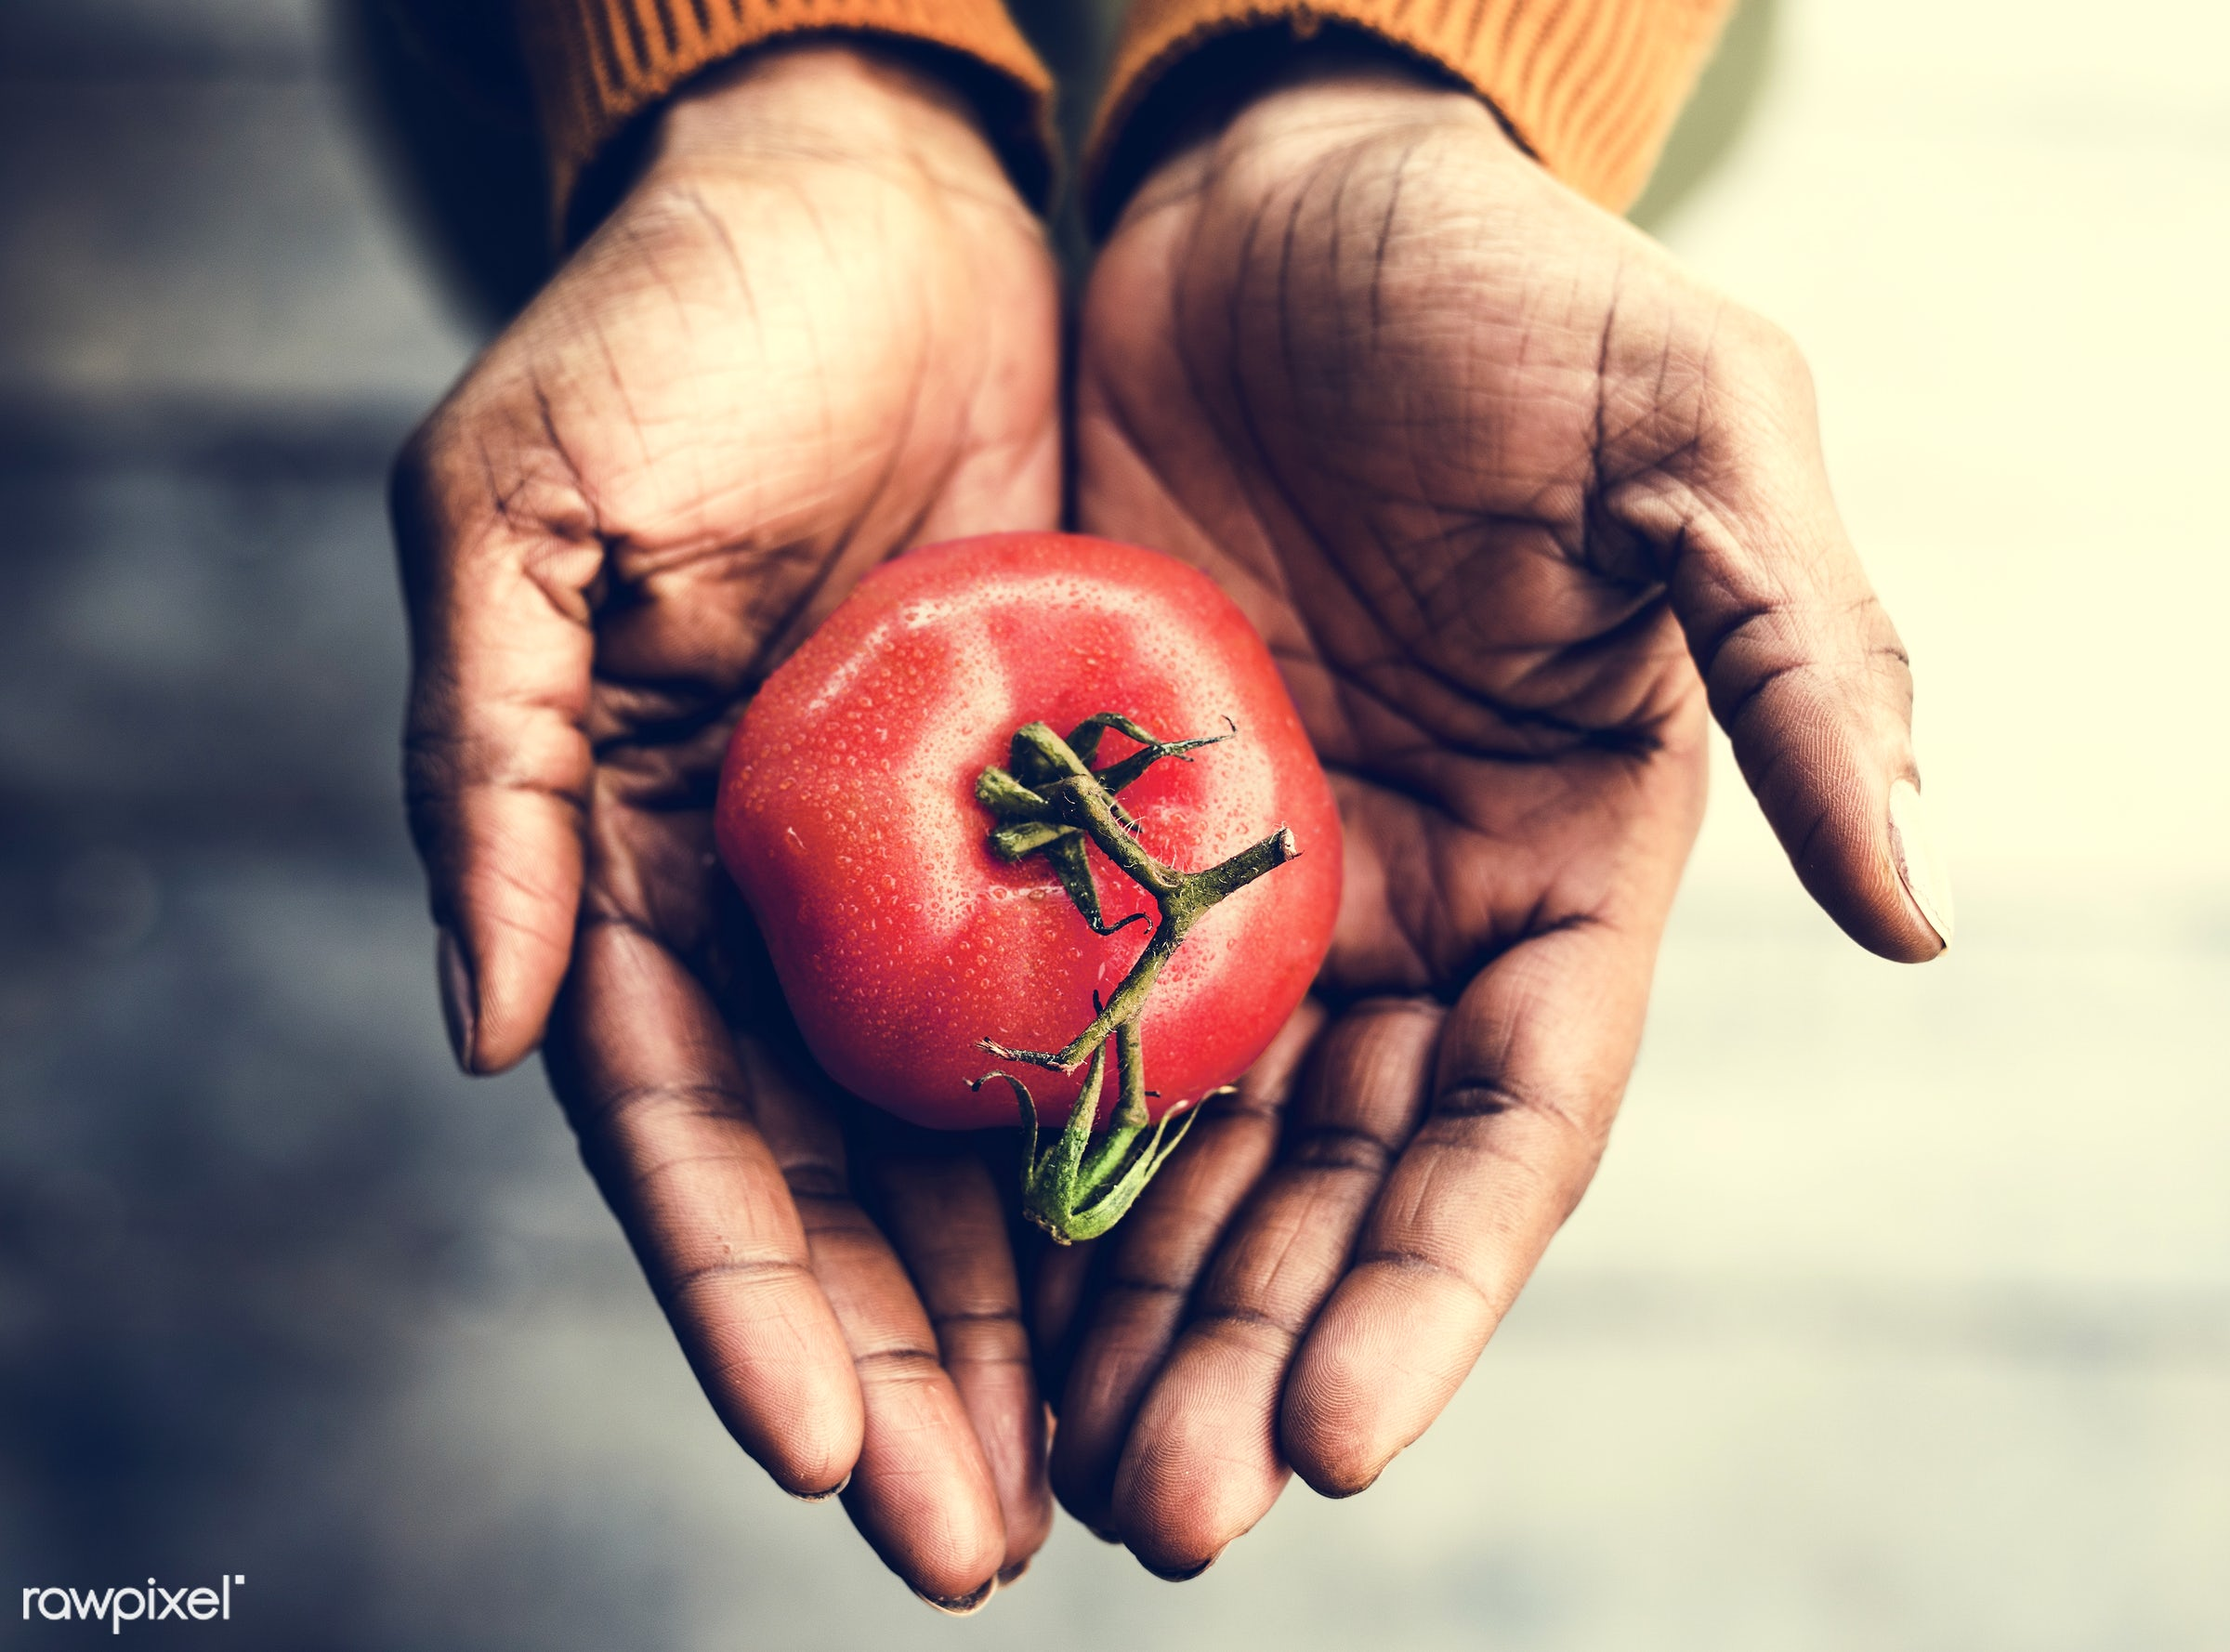 raw, plant, concept, tomato, botany, people, hand, nature, farmer, conservation, fresh, care, vegetarian, ecology, hold,...